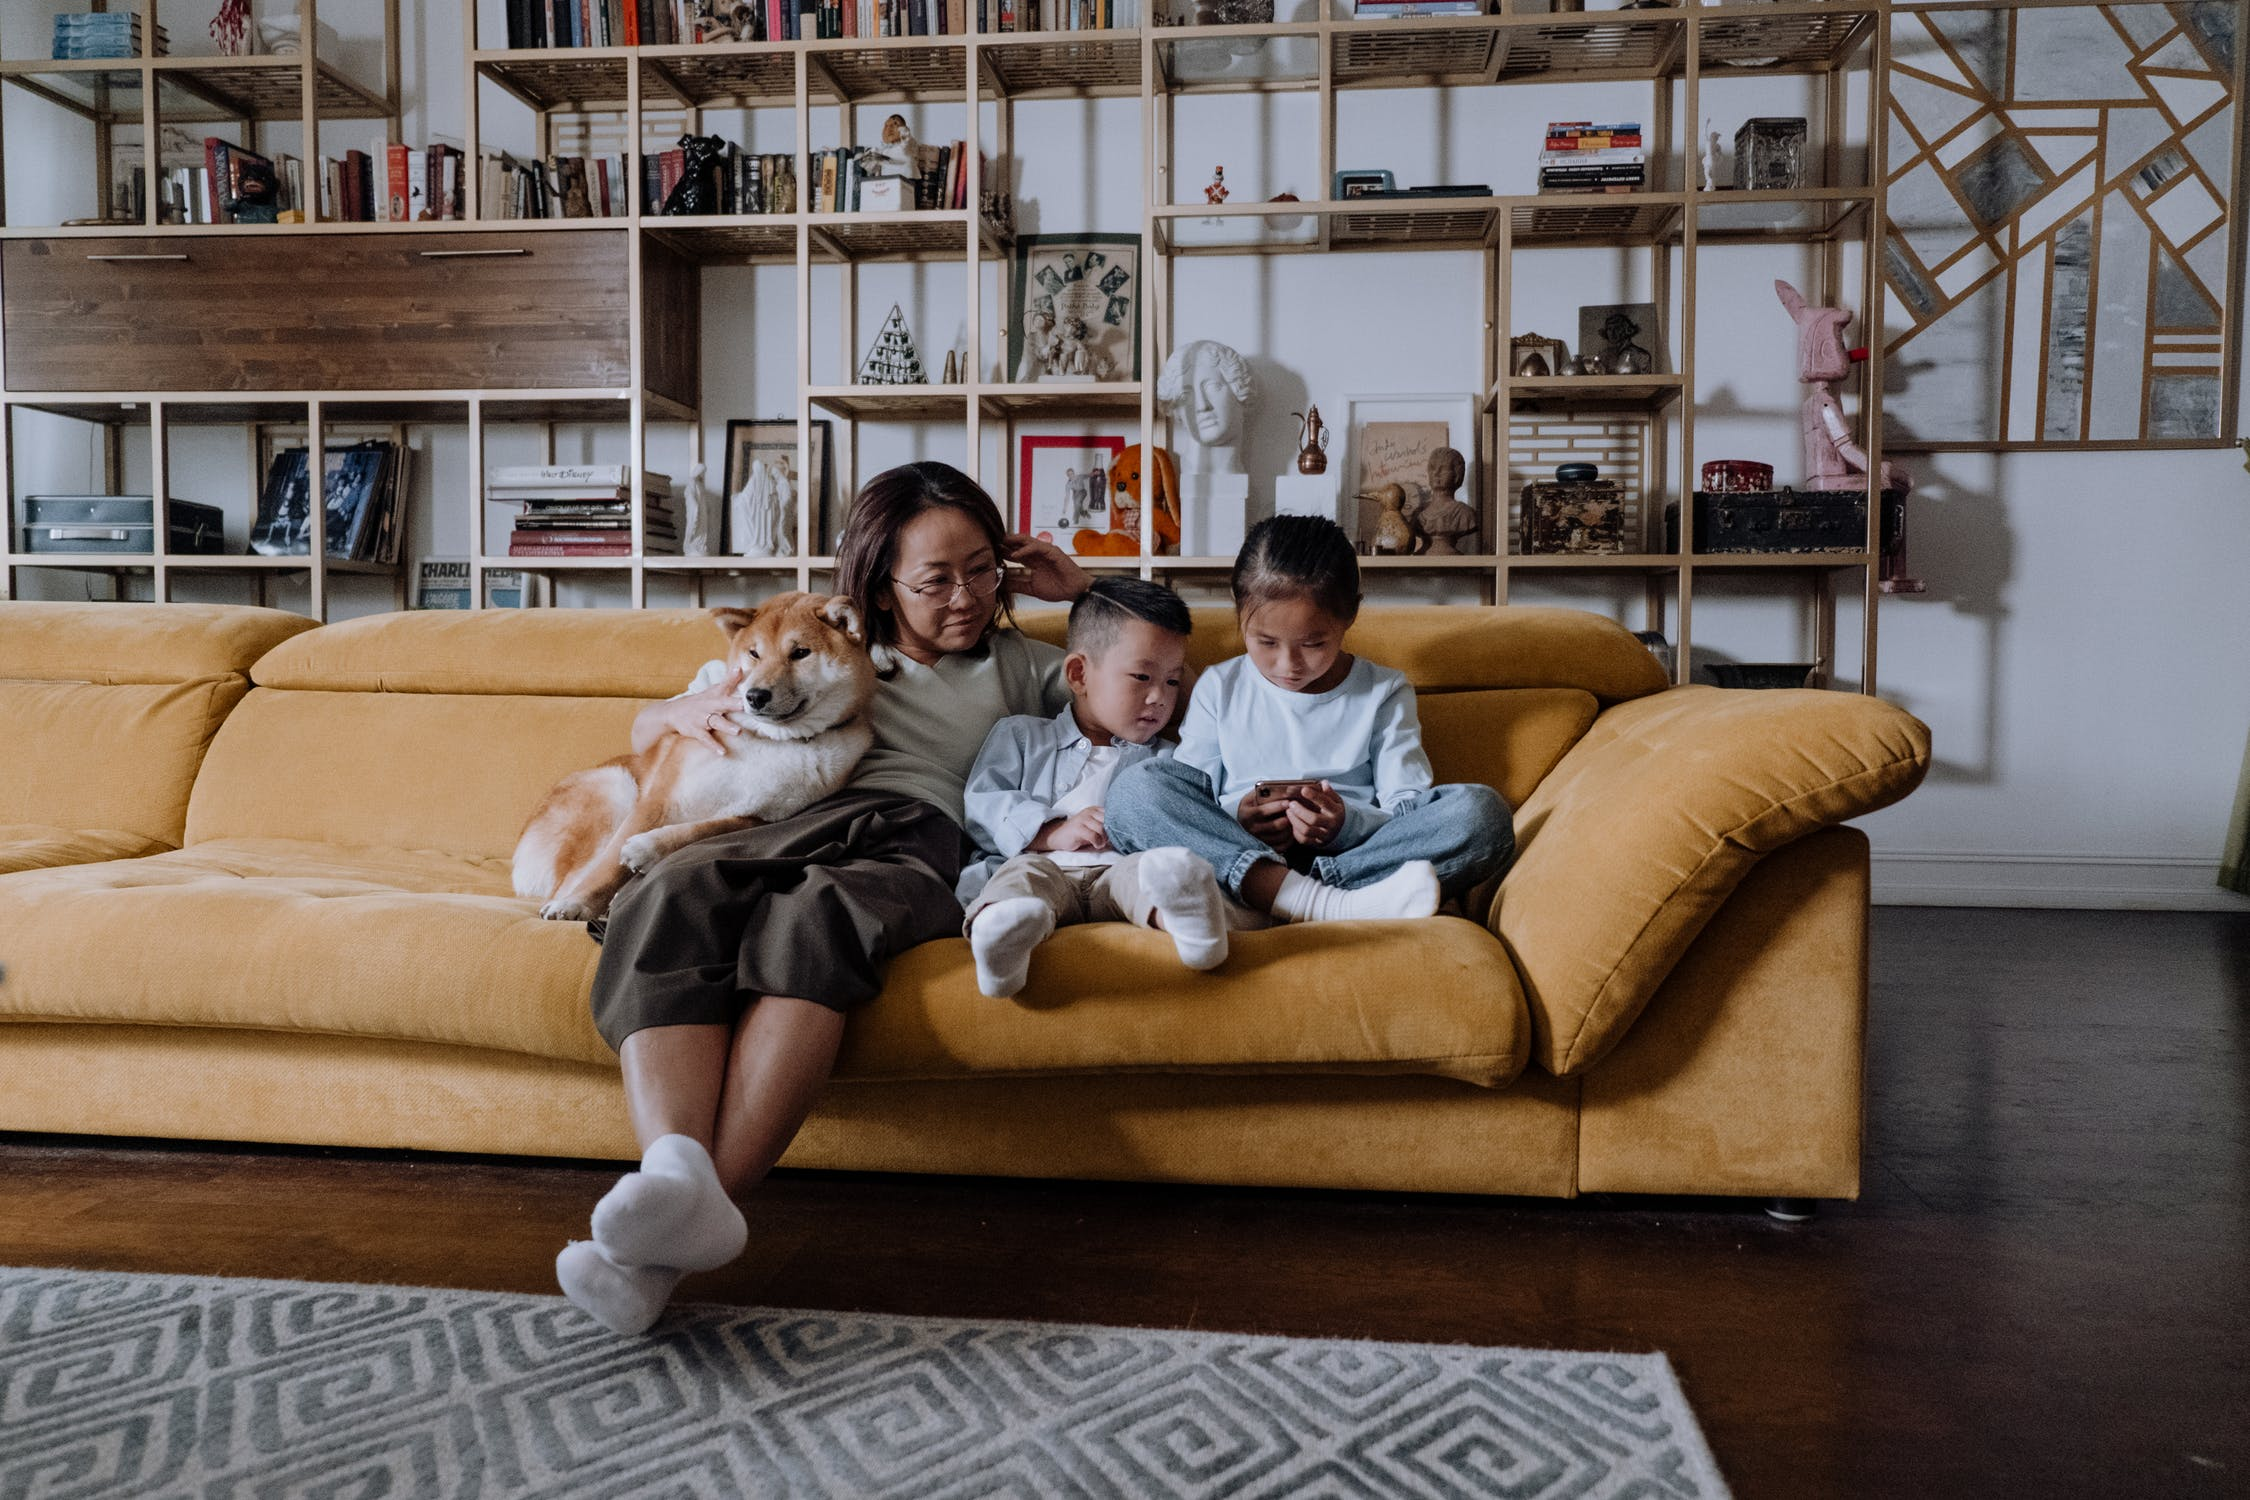 An image of a parent/guardian/grandparent watching two young children play a game on a smartphone on a large tan sofa in the living room.